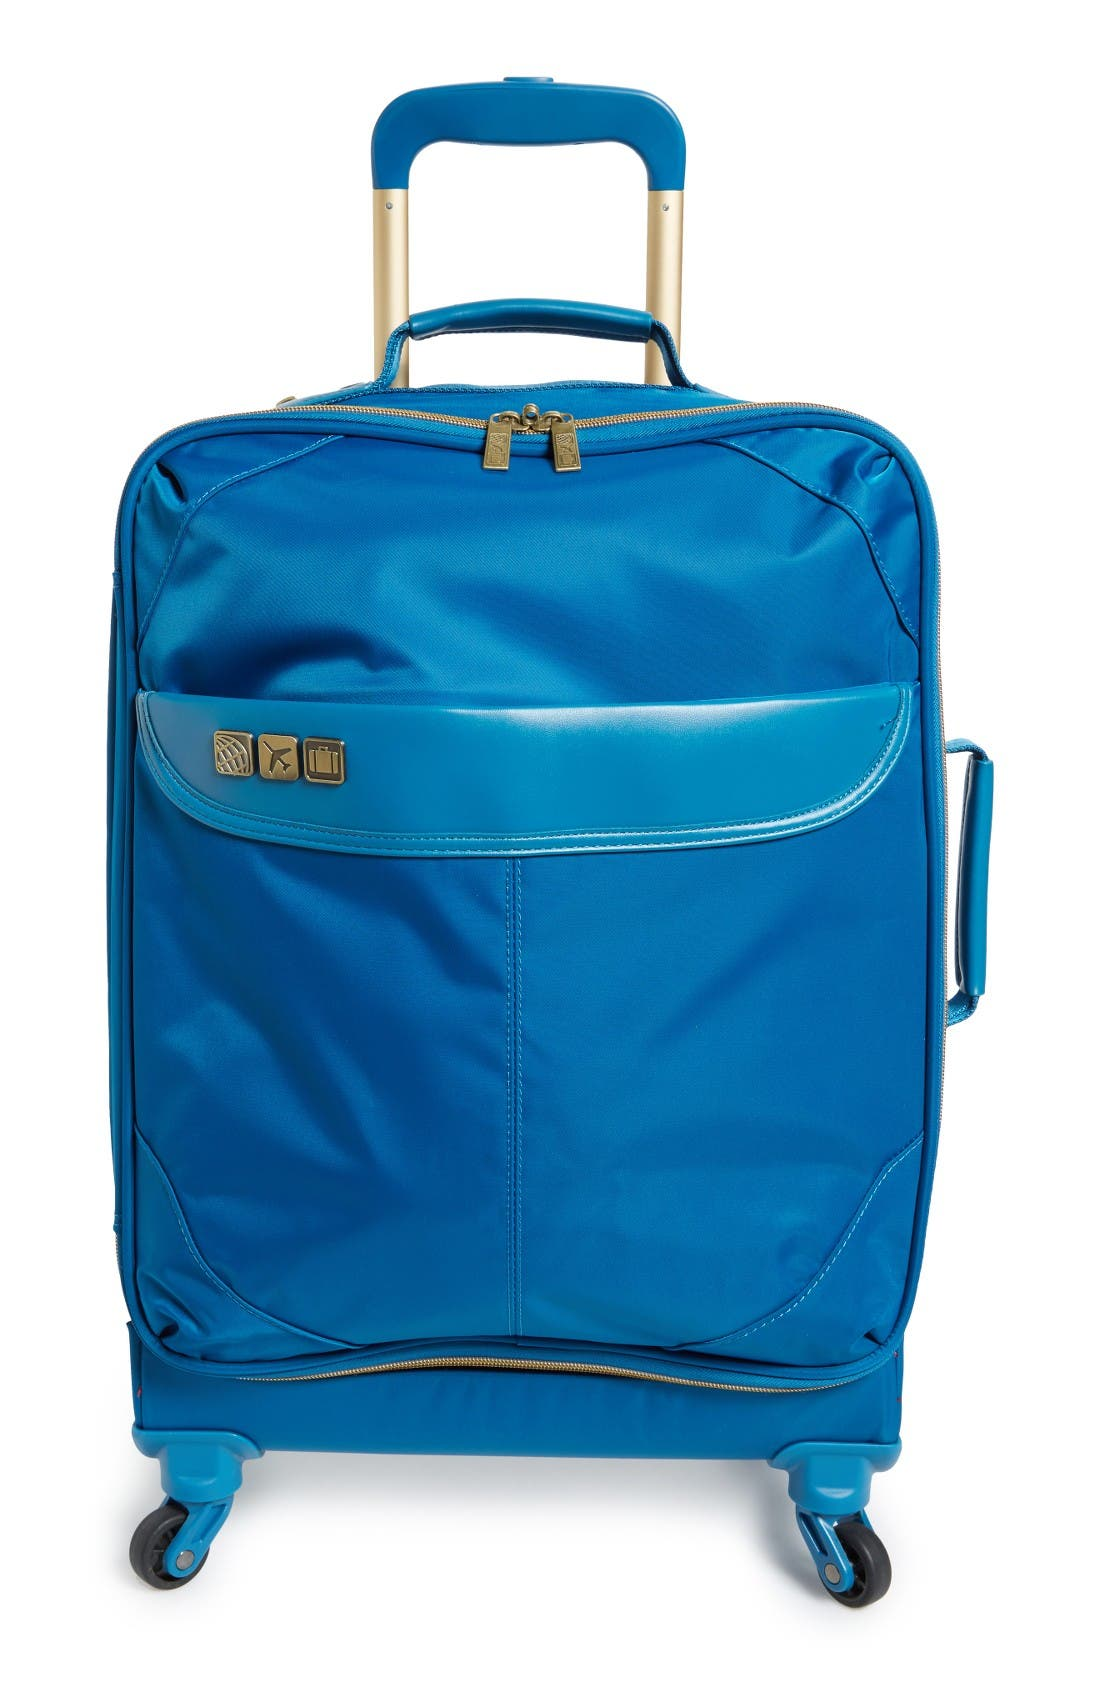 Main Image - Flight 001 Avionette 19-Inch Rolling Carry-On Suitcase